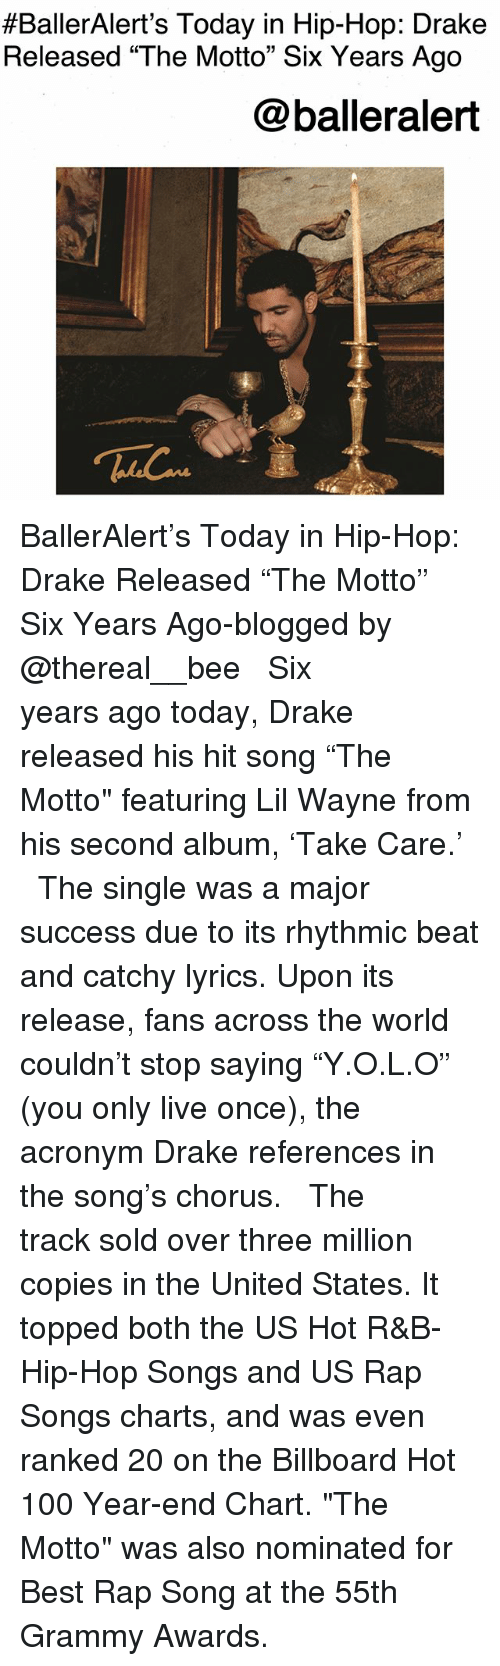 """Grammy Awards:  #BallerAlert's Today in Hip-Hop: Drake  Released """"The Motto"""" Six Years Ago  @balleralert BallerAlert's Today in Hip-Hop: Drake Released """"The Motto"""" Six Years Ago-blogged by @thereal__bee ⠀⠀⠀⠀⠀⠀⠀⠀⠀ ⠀⠀ Six years ago today, Drake released his hit song """"The Motto"""" featuring Lil Wayne from his second album, 'Take Care.' ⠀⠀⠀⠀⠀⠀⠀⠀⠀ ⠀⠀ The single was a major success due to its rhythmic beat and catchy lyrics. Upon its release, fans across the world couldn't stop saying """"Y.O.L.O"""" (you only live once), the acronym Drake references in the song's chorus. ⠀⠀⠀⠀⠀⠀⠀⠀⠀ ⠀⠀ The track sold over three million copies in the United States. It topped both the US Hot R&B-Hip-Hop Songs and US Rap Songs charts, and was even ranked 20 on the Billboard Hot 100 Year-end Chart. """"The Motto"""" was also nominated for Best Rap Song at the 55th Grammy Awards."""